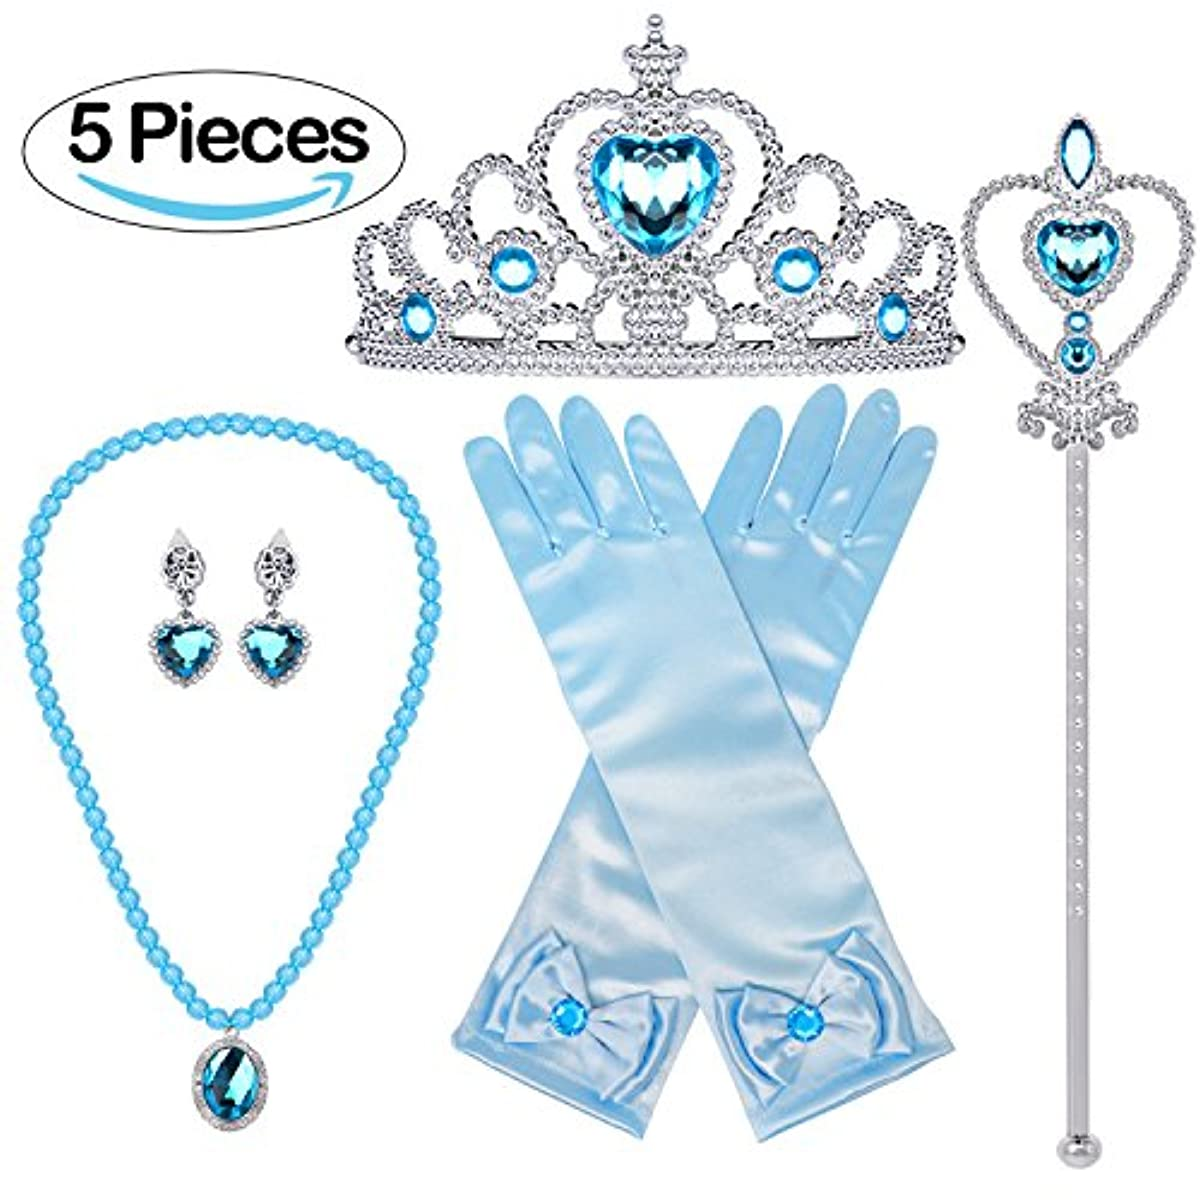 [코스프레 코스튬 프린세스 공주 악세서리 세트 목걸이 왕관 장갑 귀걸이] Bonallo Princess Dress Up Accessories Gift Set For Elsa Crown Scepter Necklace Earrings Gloves, Blue, 5 Pieces